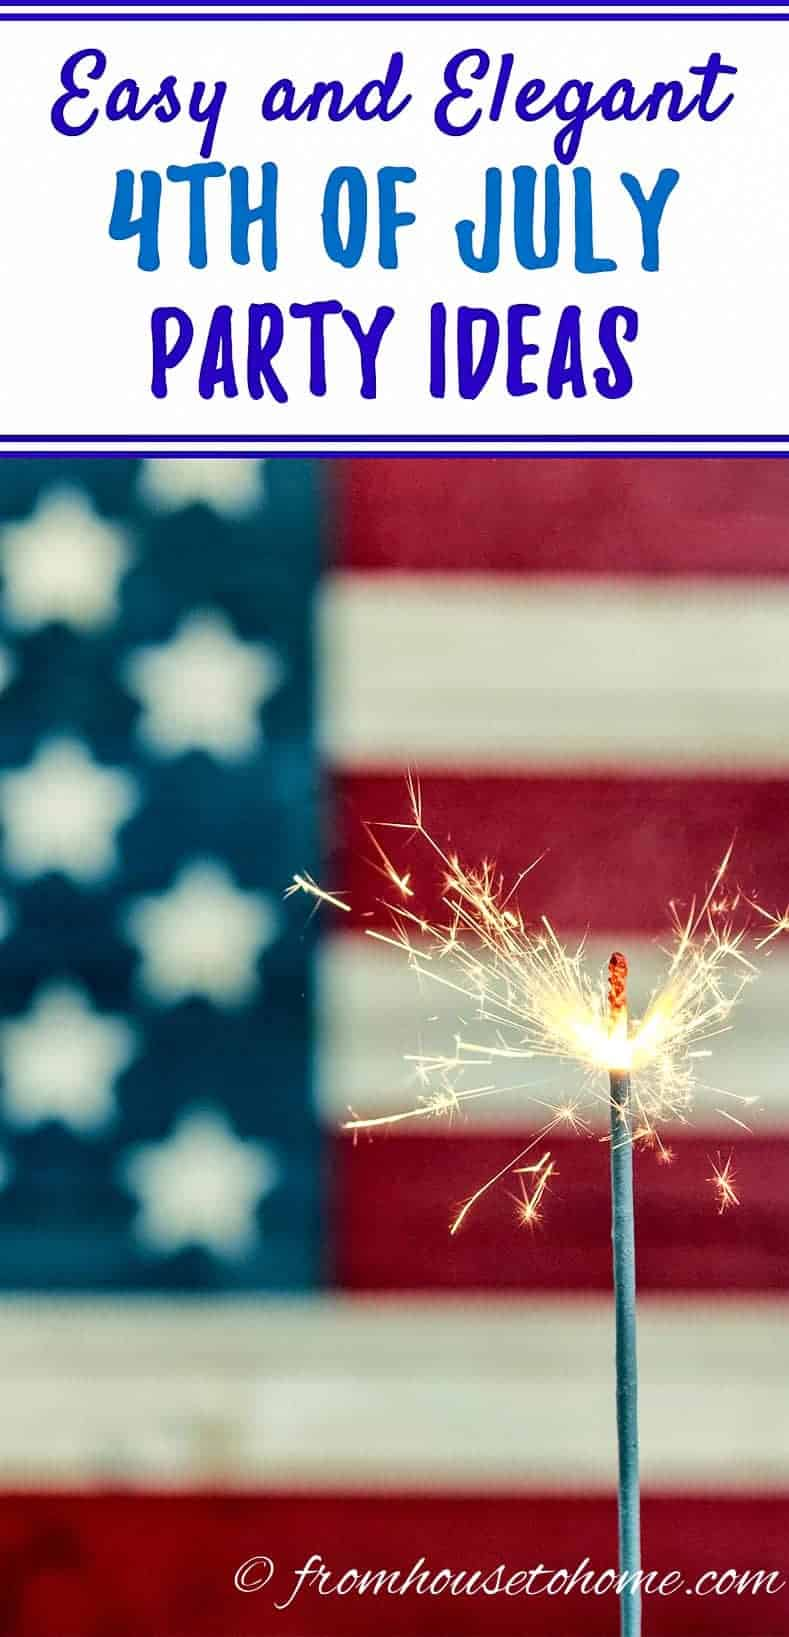 Easy and Elegant 4th of July Party Ideas | If want some 4th of July party ideas, this list will help with food, desserts and decorations...everything for the ultimate Independence Day celebration!